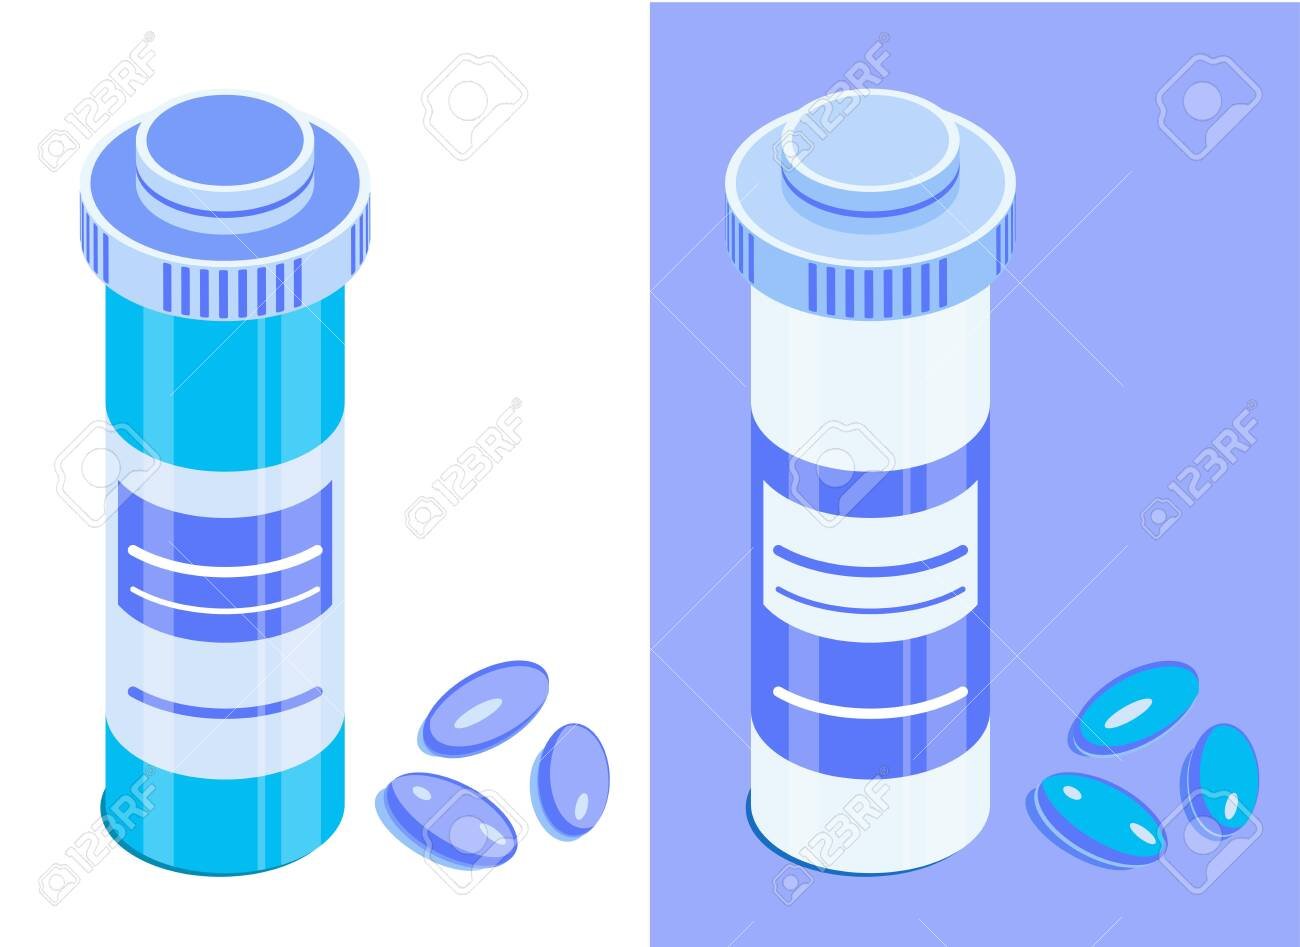 Pharmaceutical bottle and pills  Round medicine jar with closed